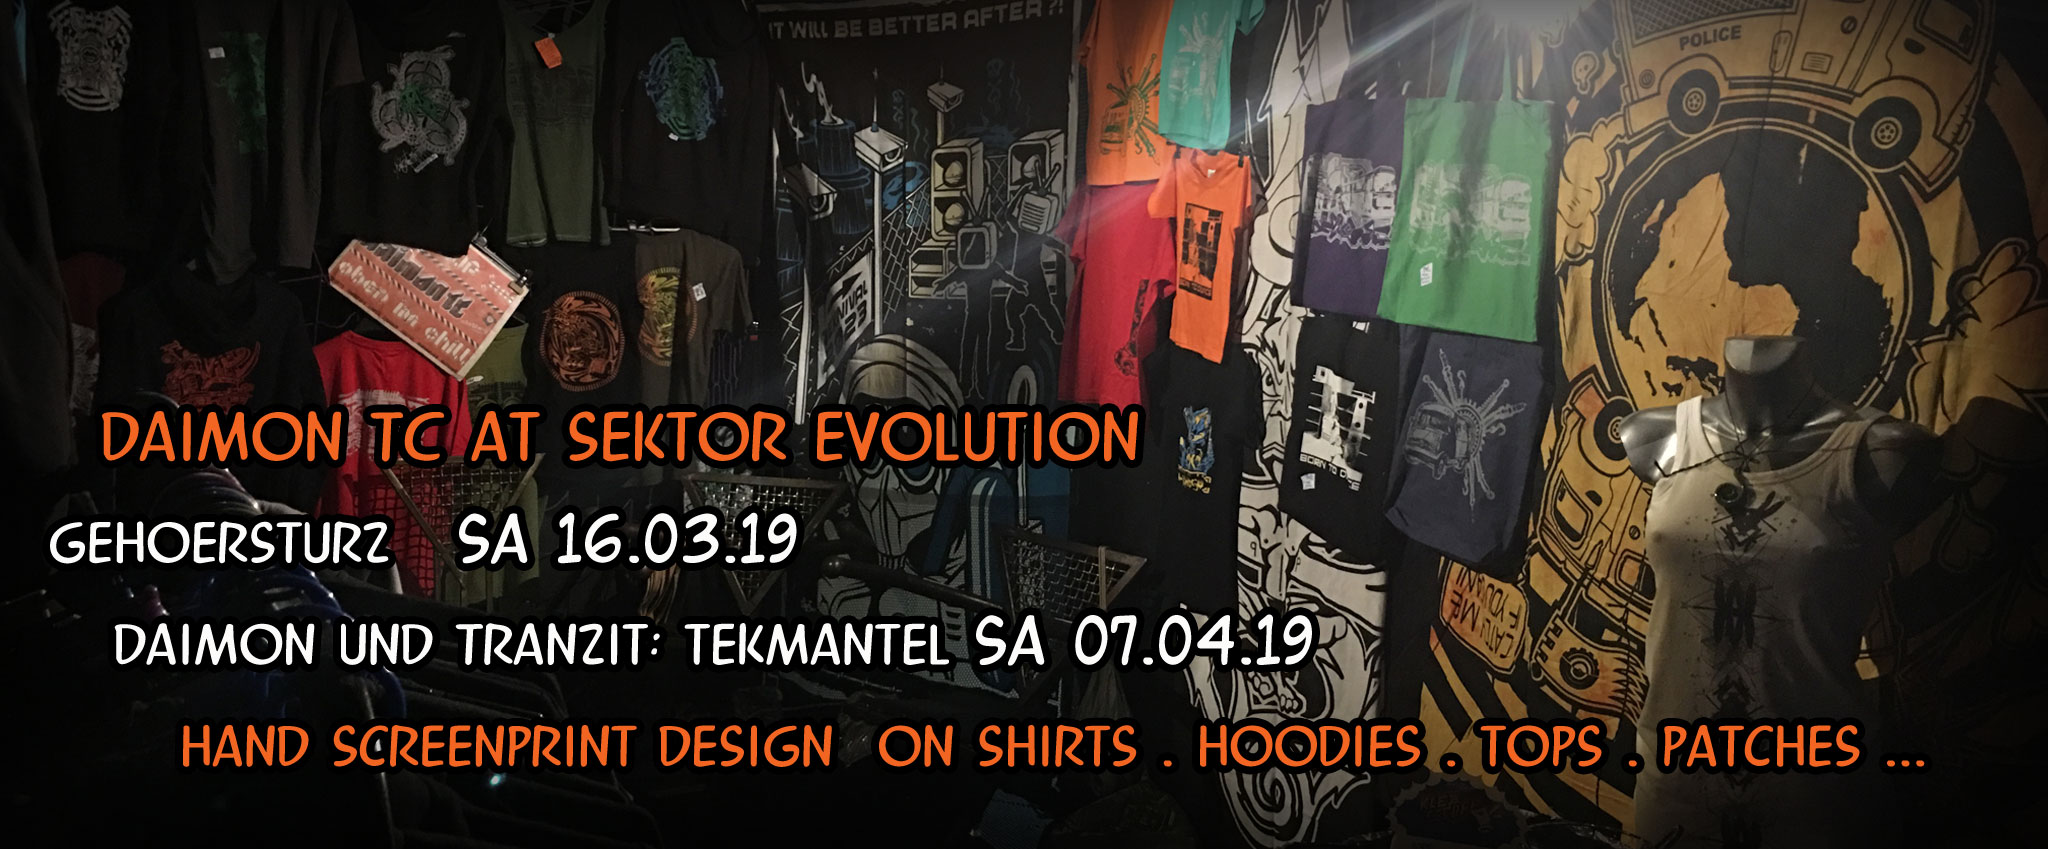 Shop Sektor Evolution Dates